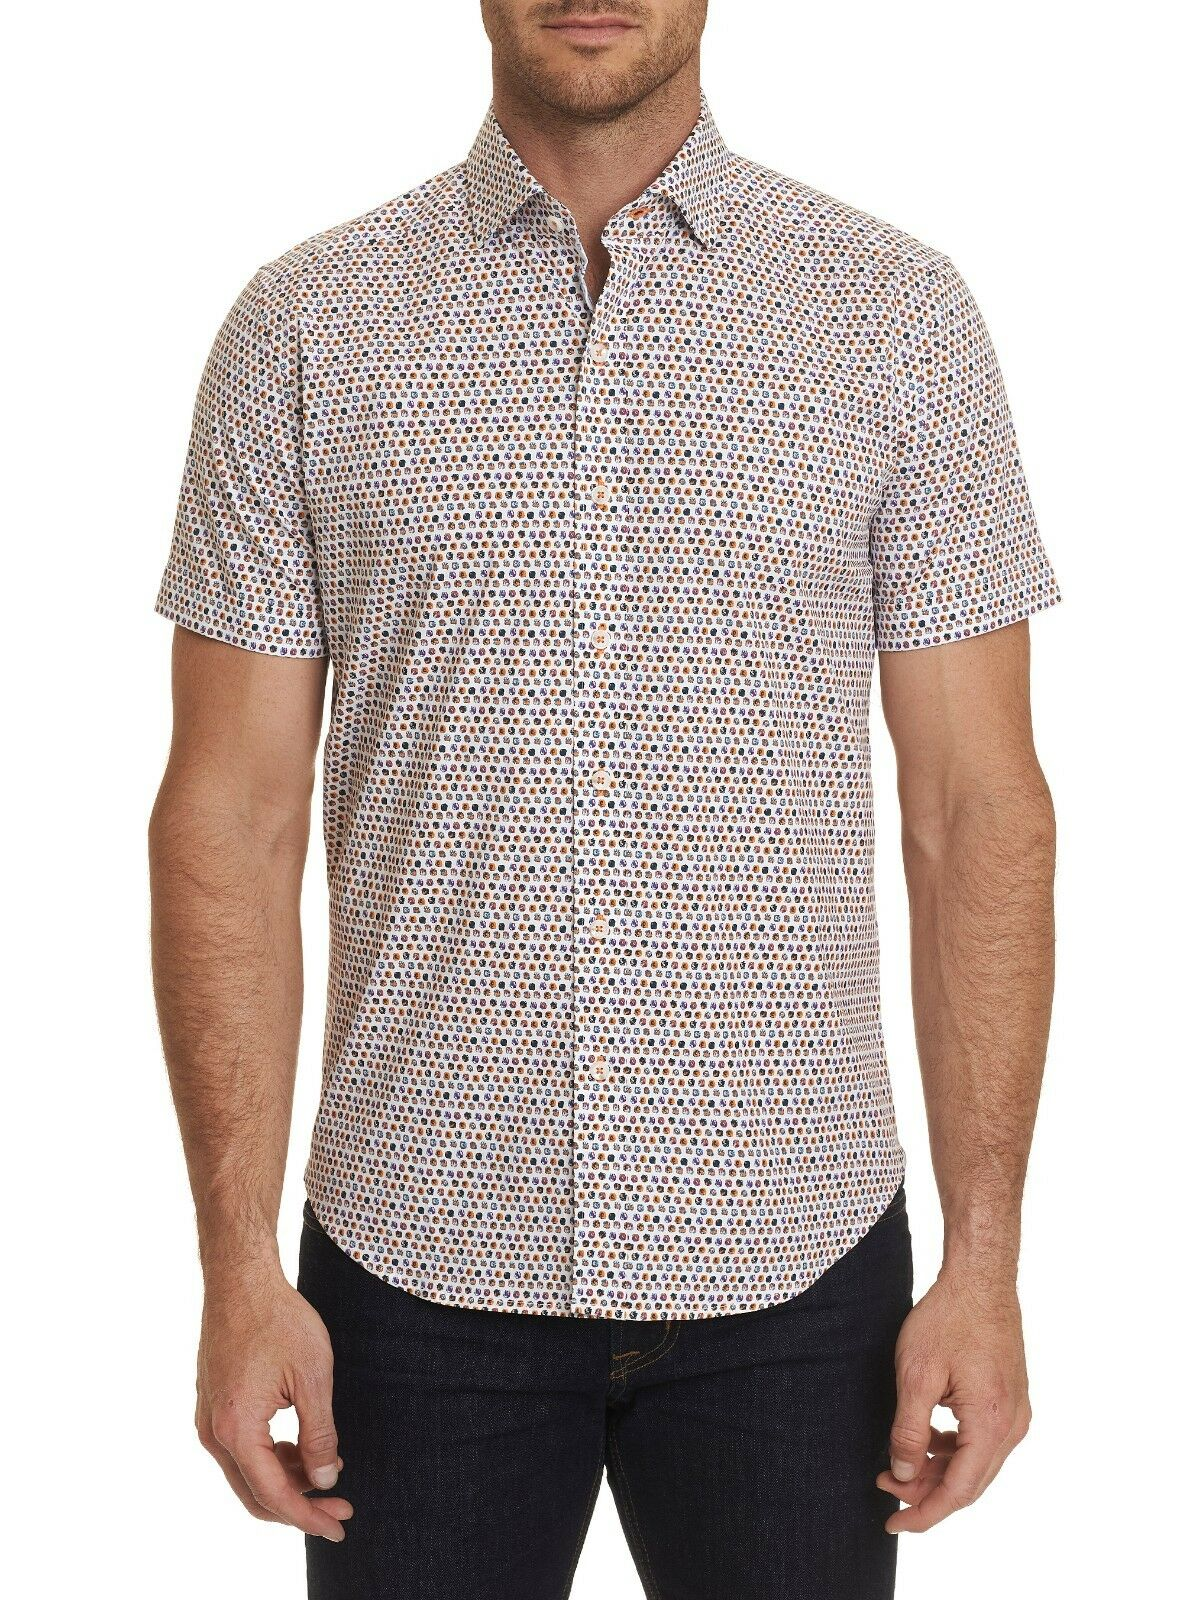 ROBERT GRAHAM CROSSPOINTE MULTIcolorD POLKA DOT S S SHIRT TAILORED FIT  NWT